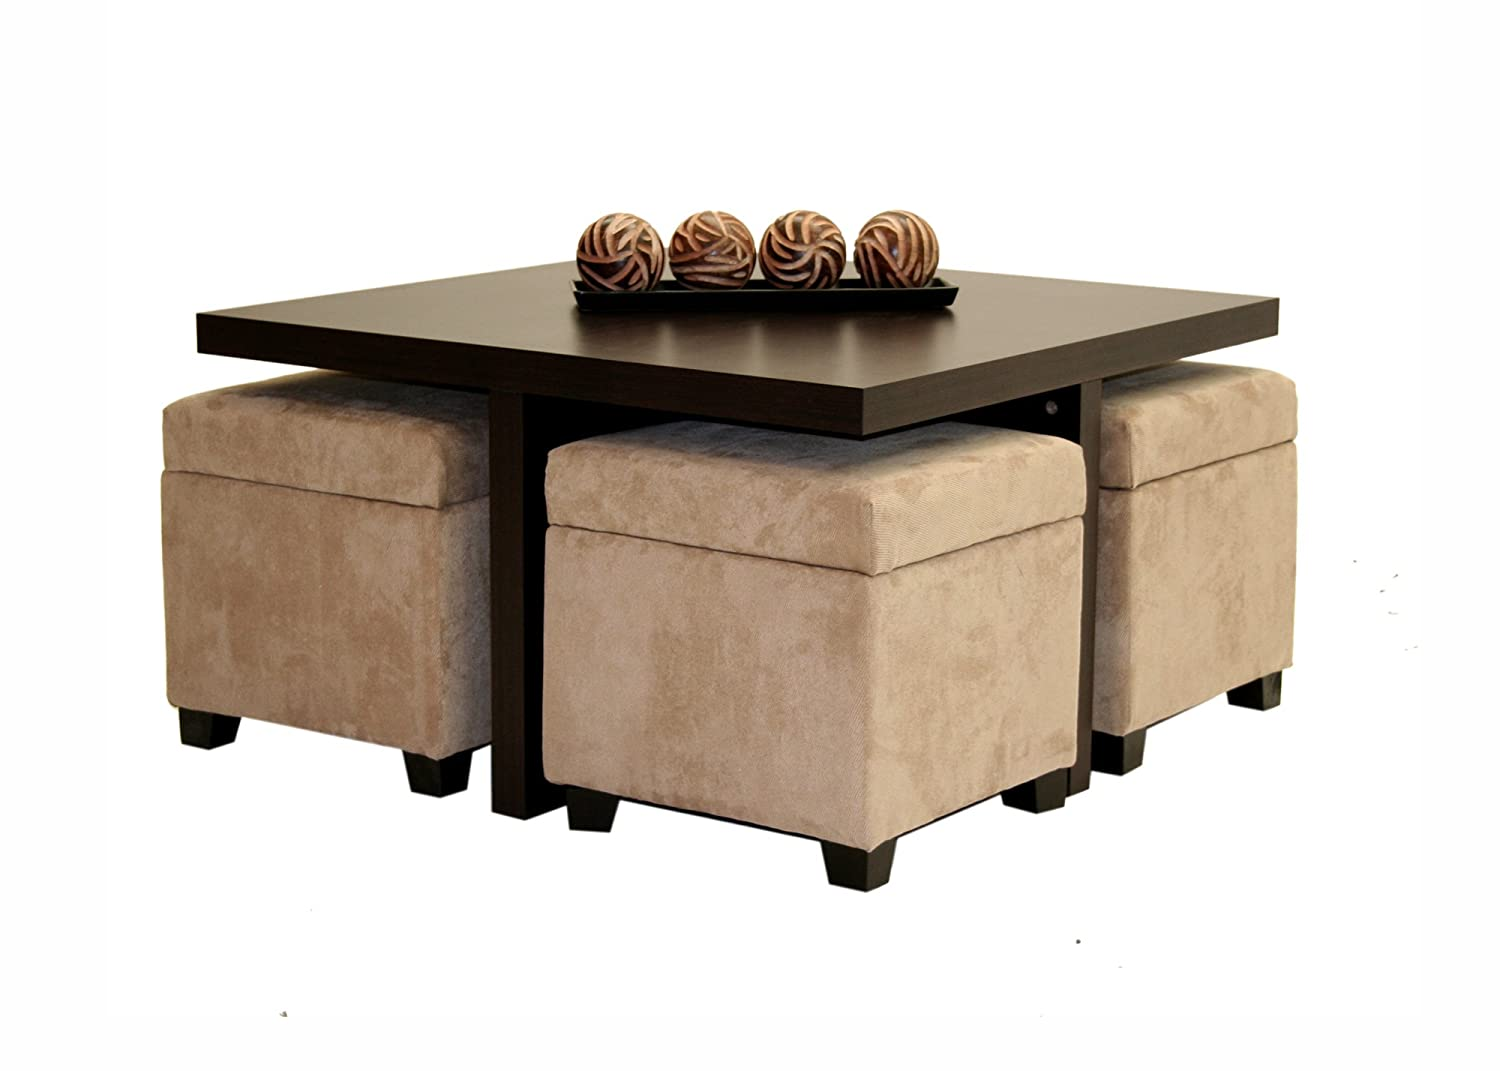 Dorel Home Products Club Table With 4 Ottomans 35 5 X 30 5 X 20 Inches